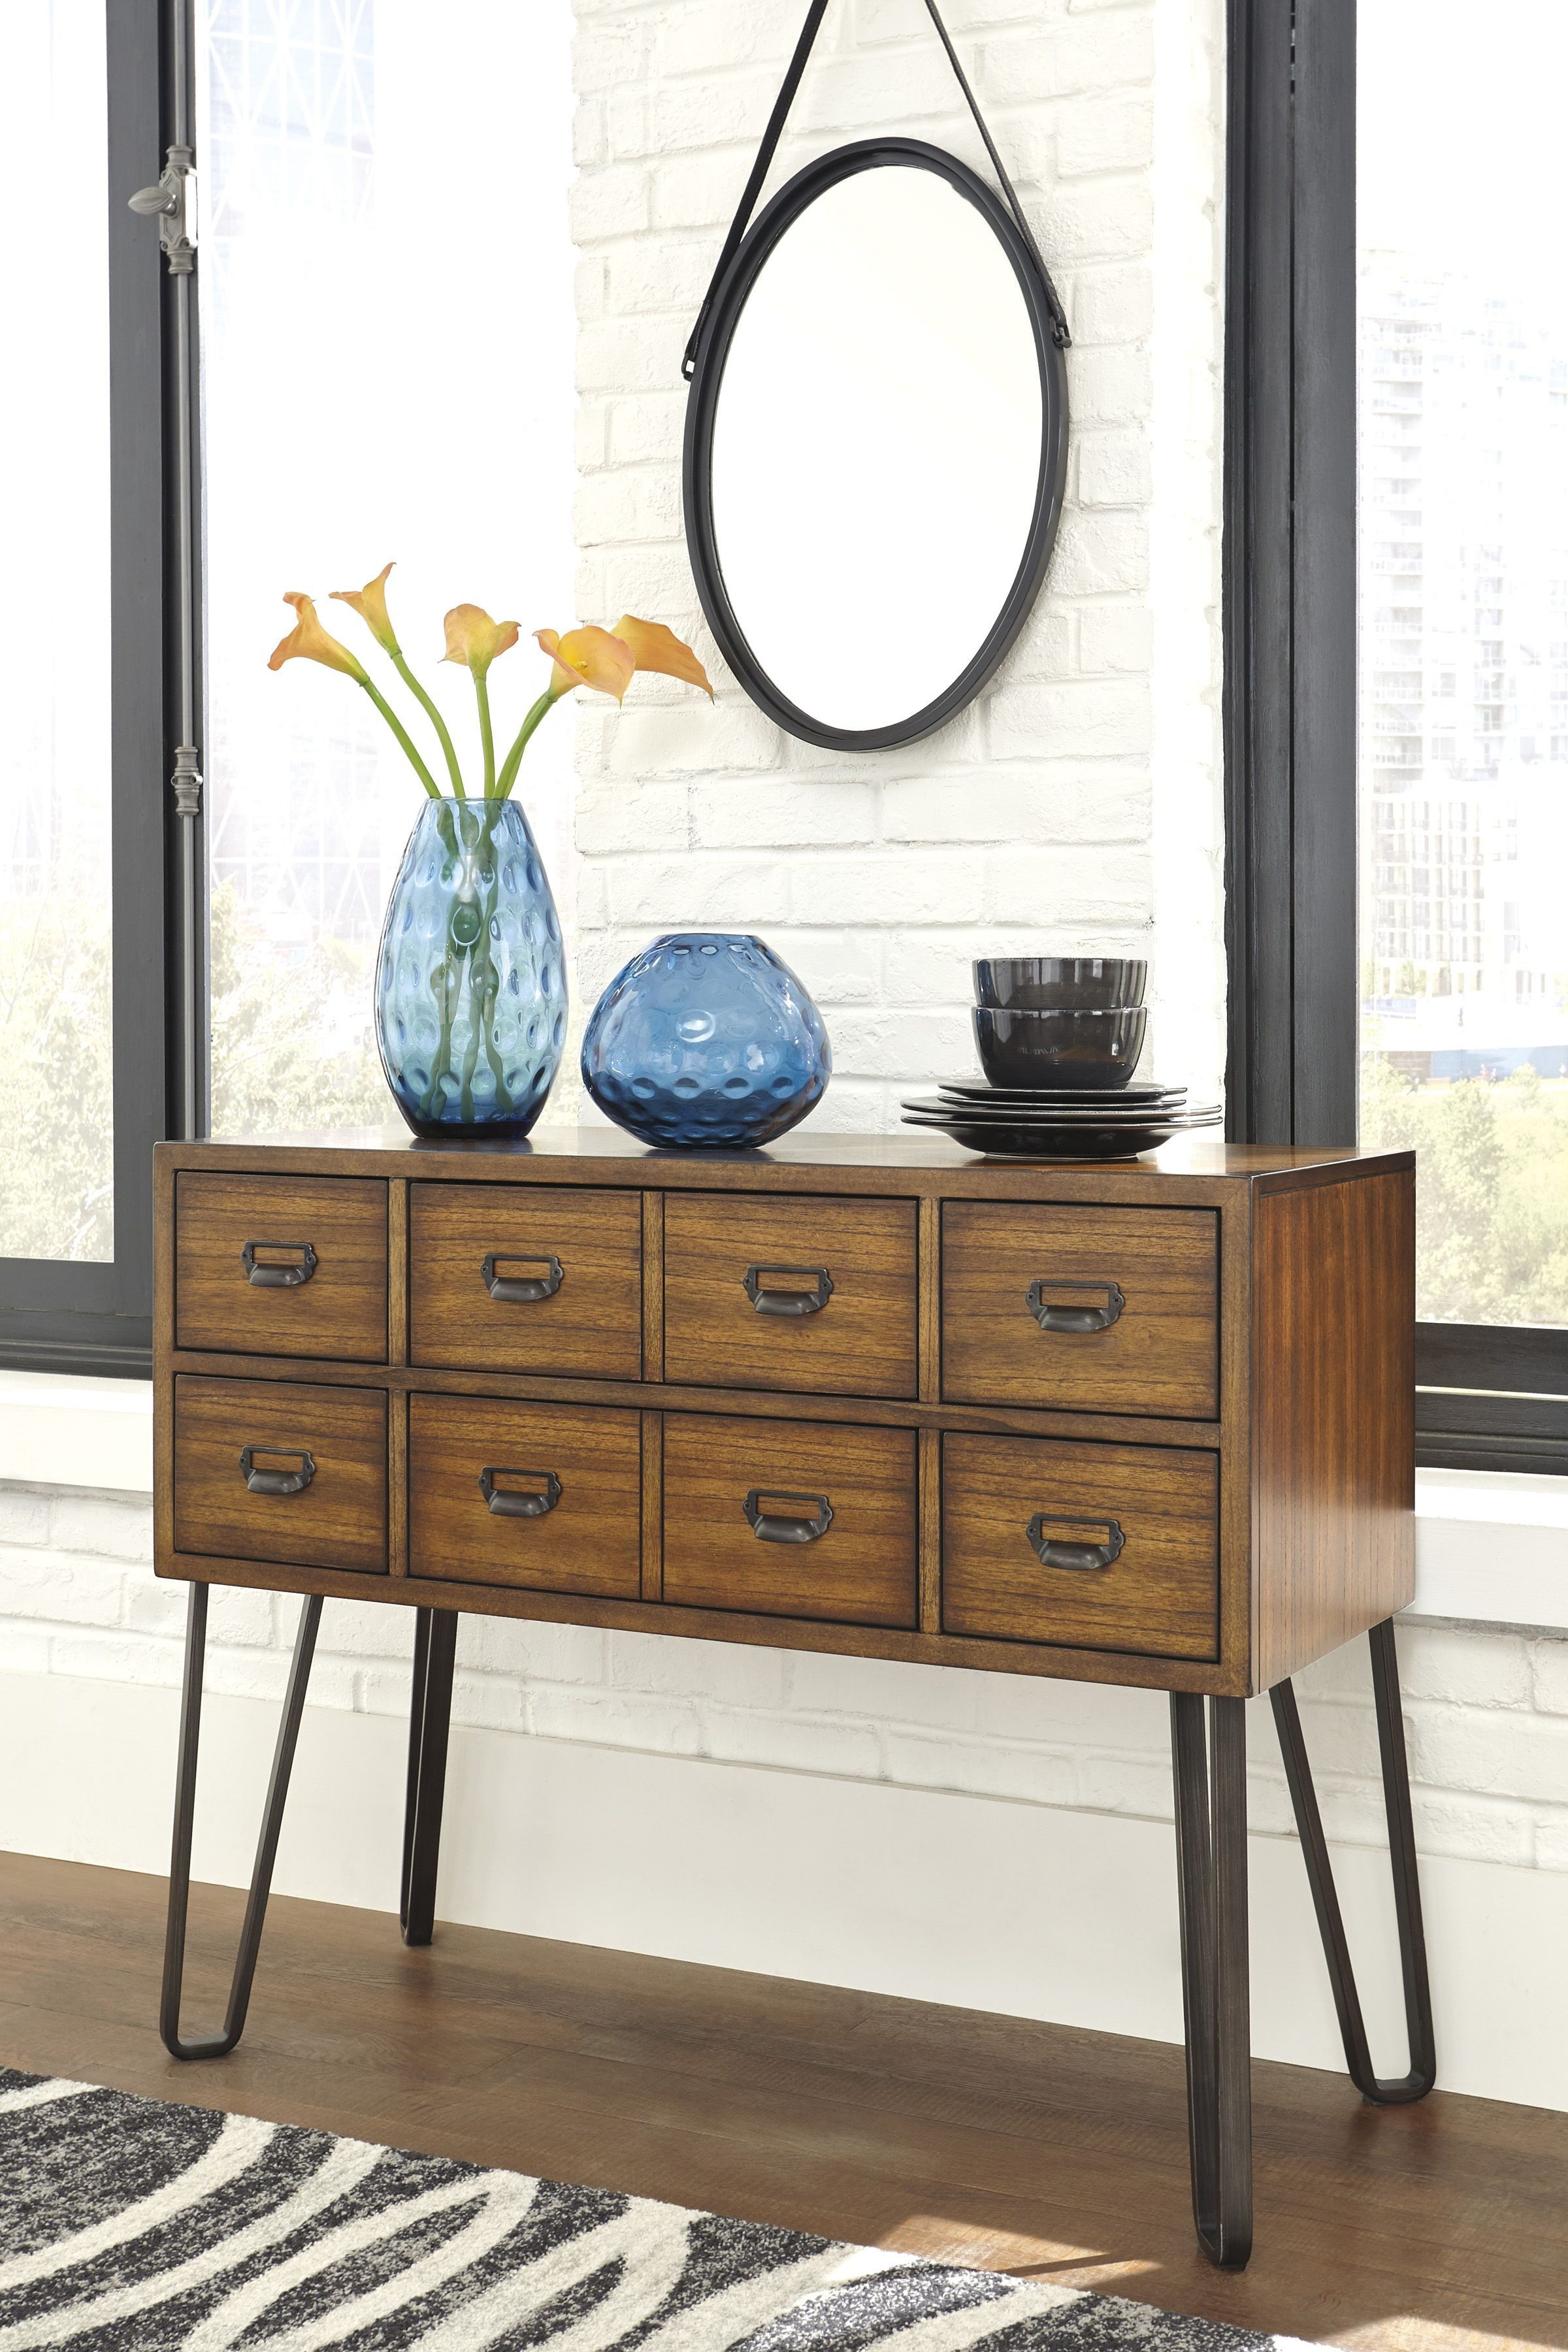 Centiar Two Tone Brown Dining Room Server From Ashley Coleman Furniture